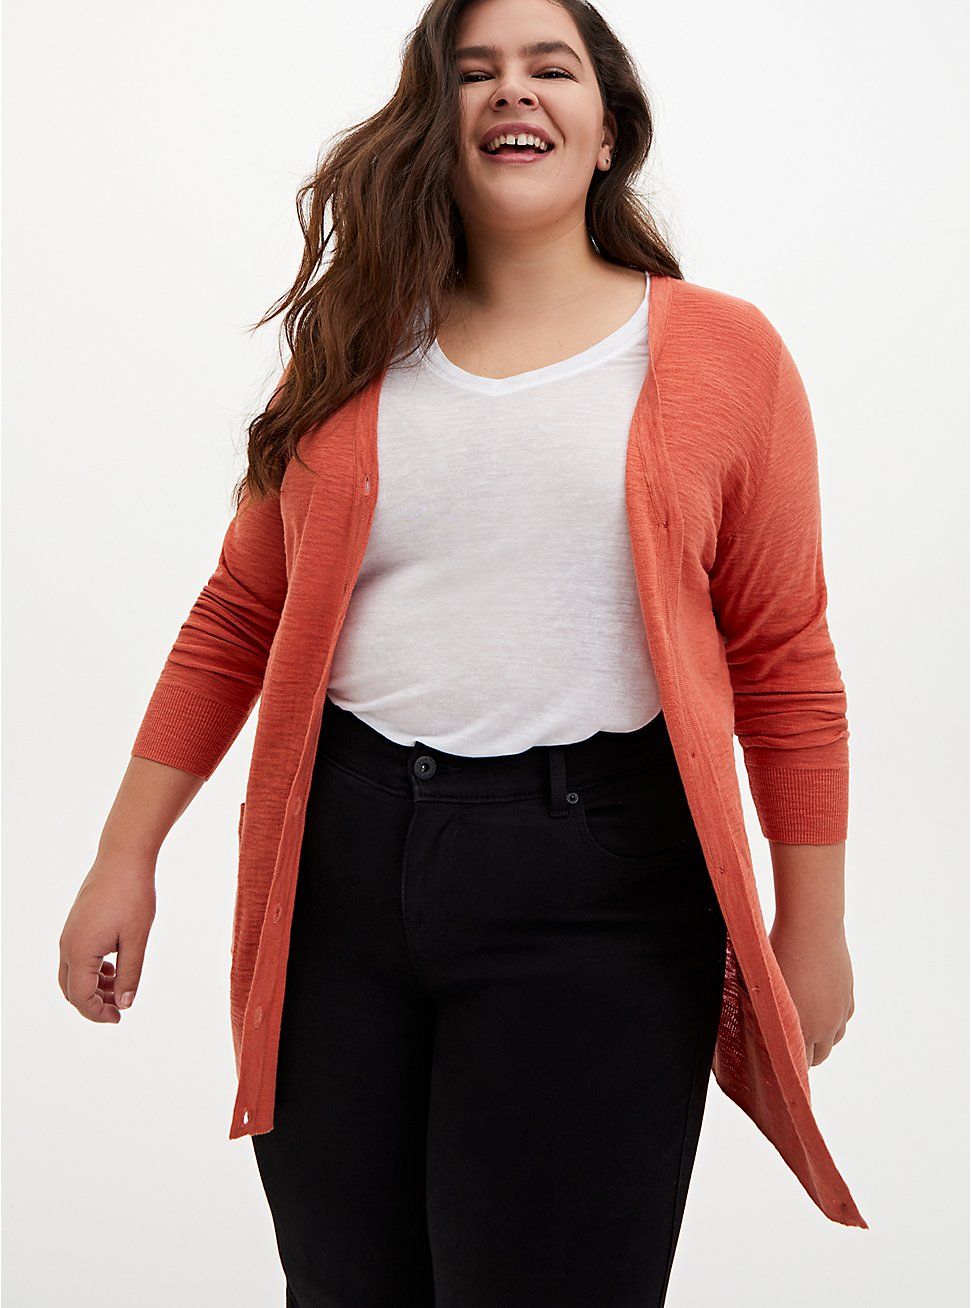 Orange Slub Boyfriend Cardigan Sweater, ORANGE, hi-res